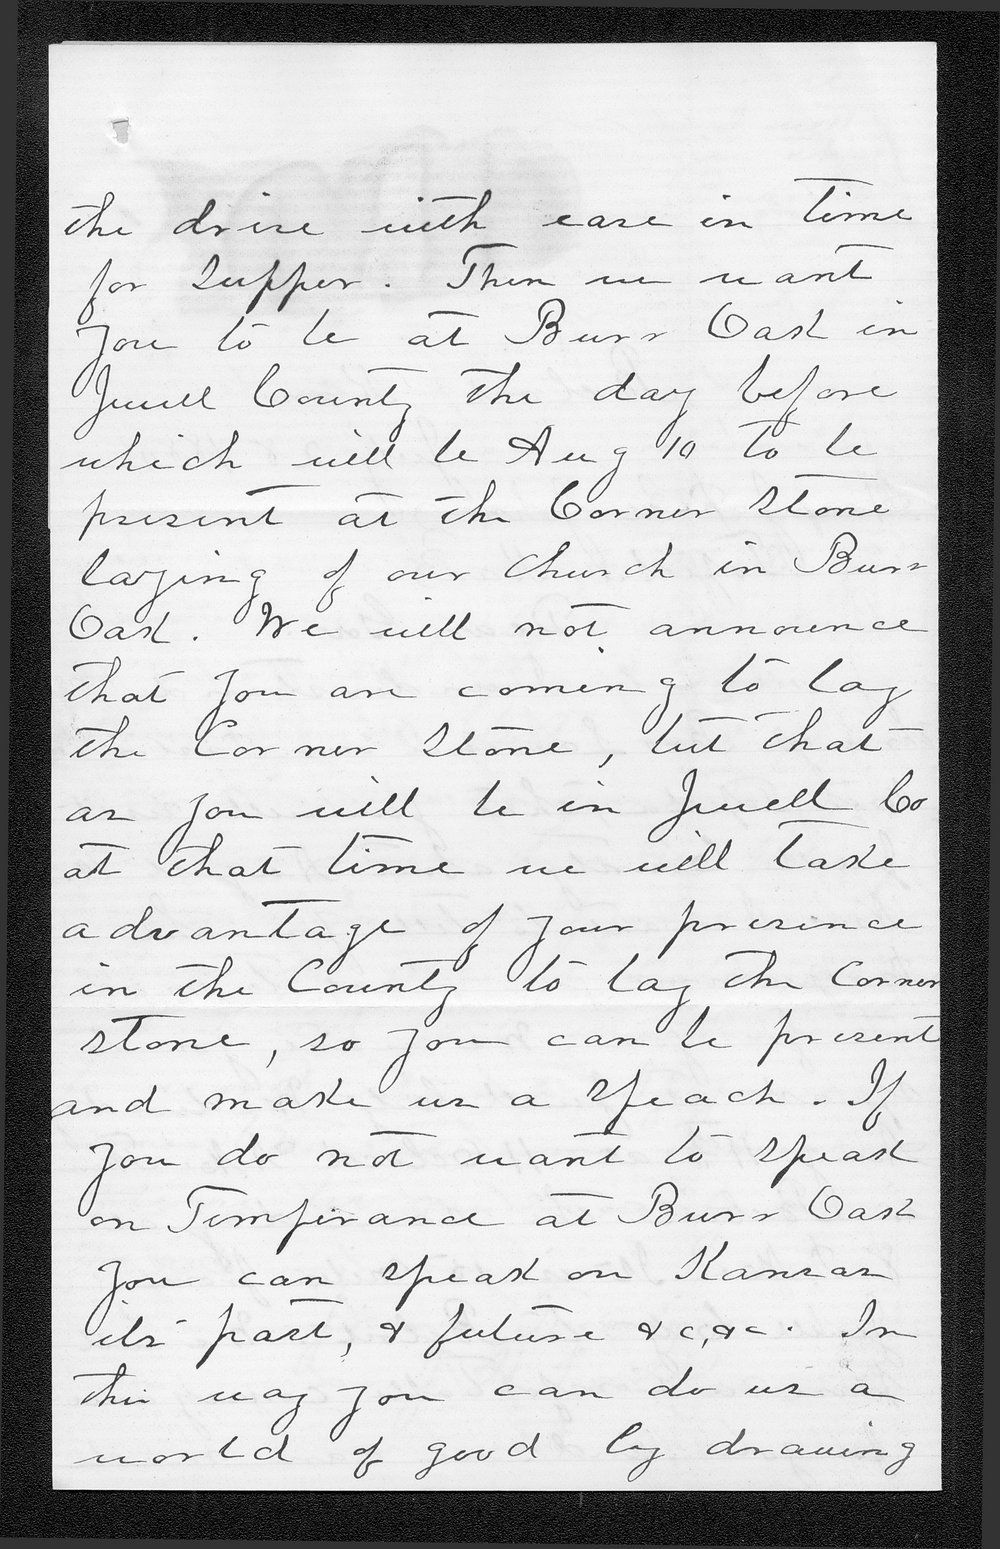 J. H. Lockwood to Governor John St. John - 2